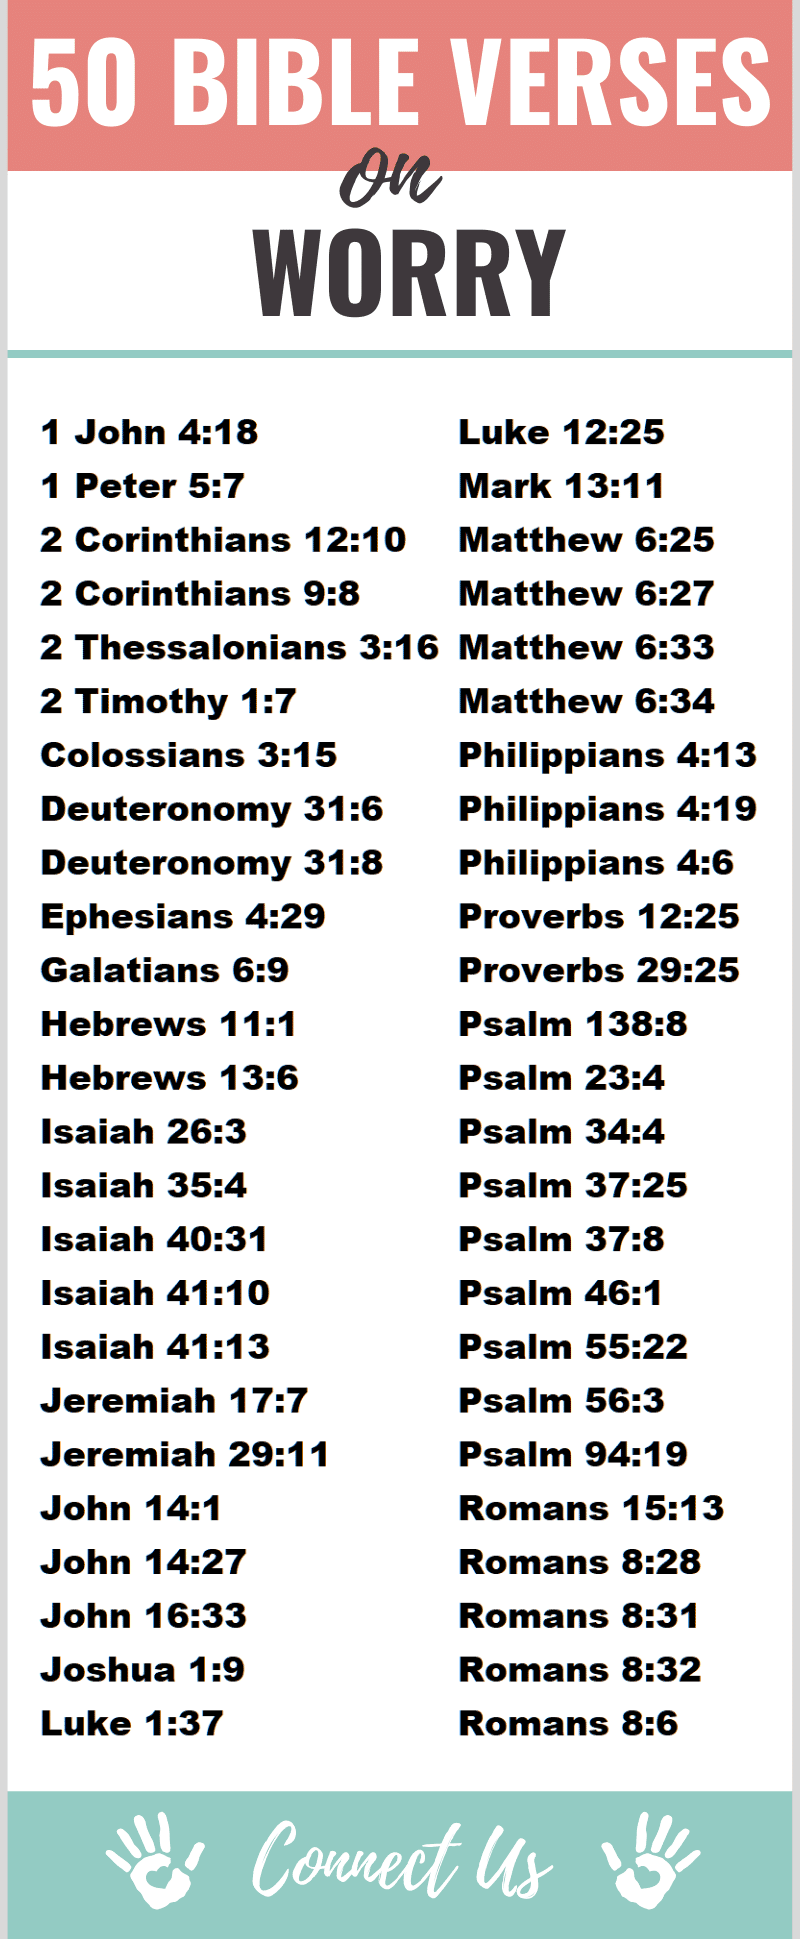 Bible Verses on Worry